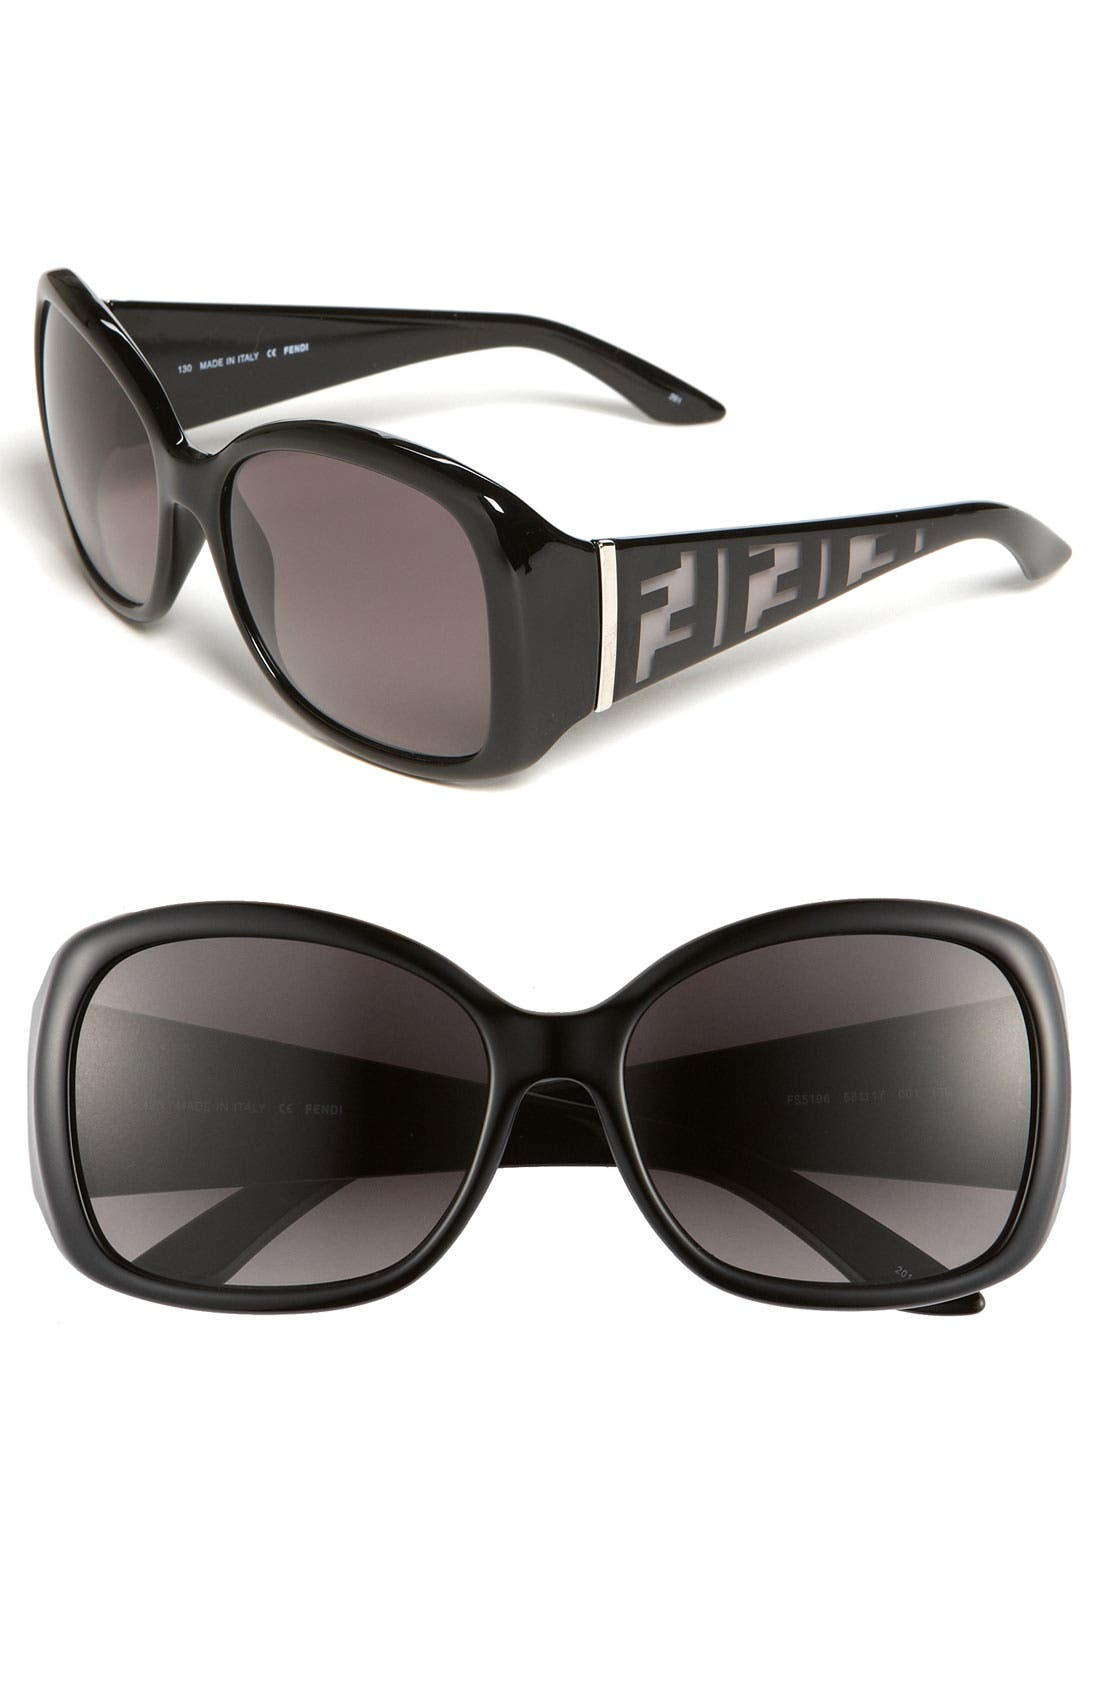 Main Image - Fendi Oversized Sunglasses